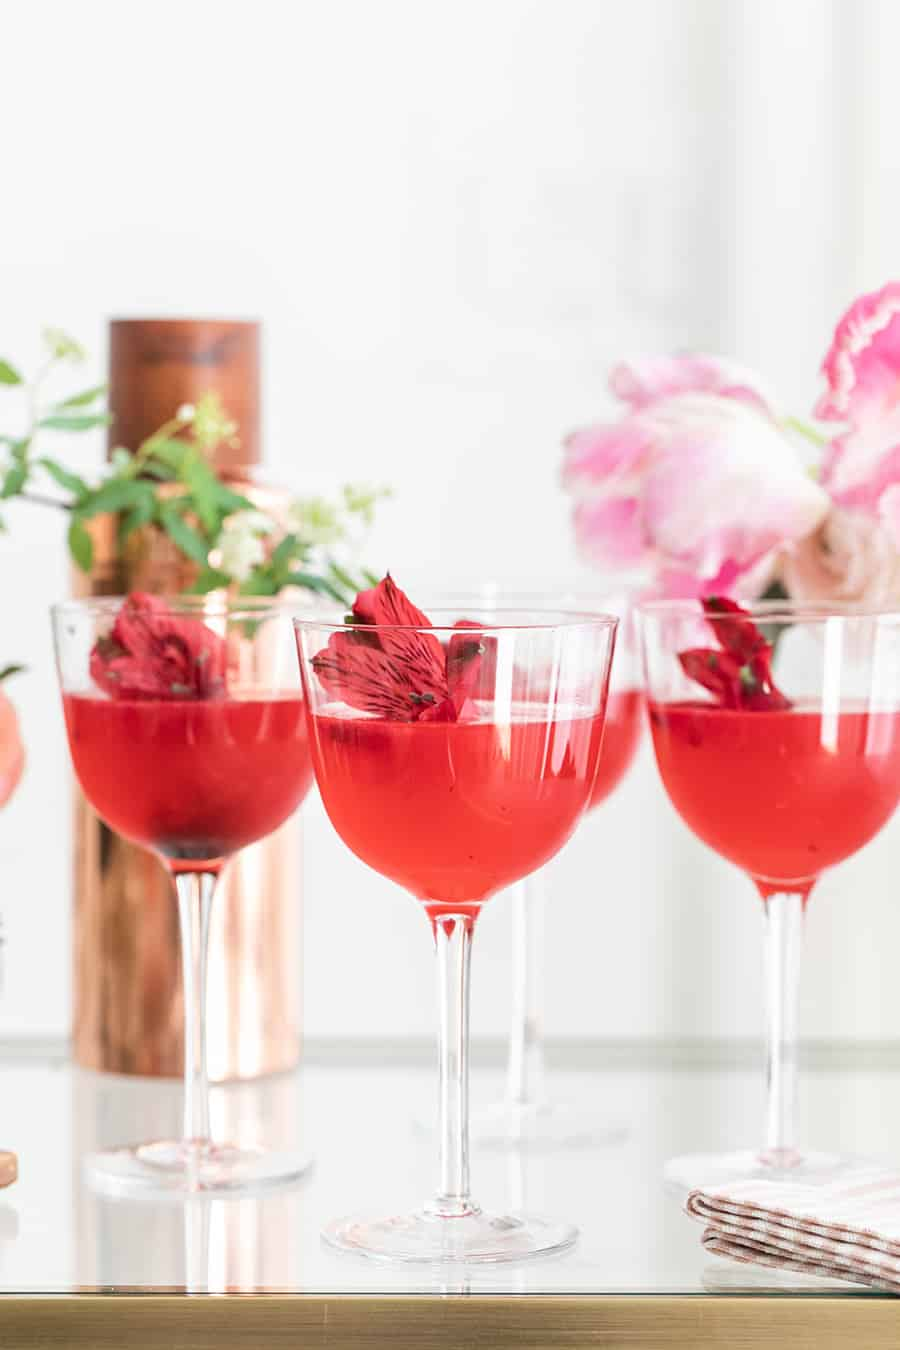 Beautiful pink cocktails garnished with flowers.